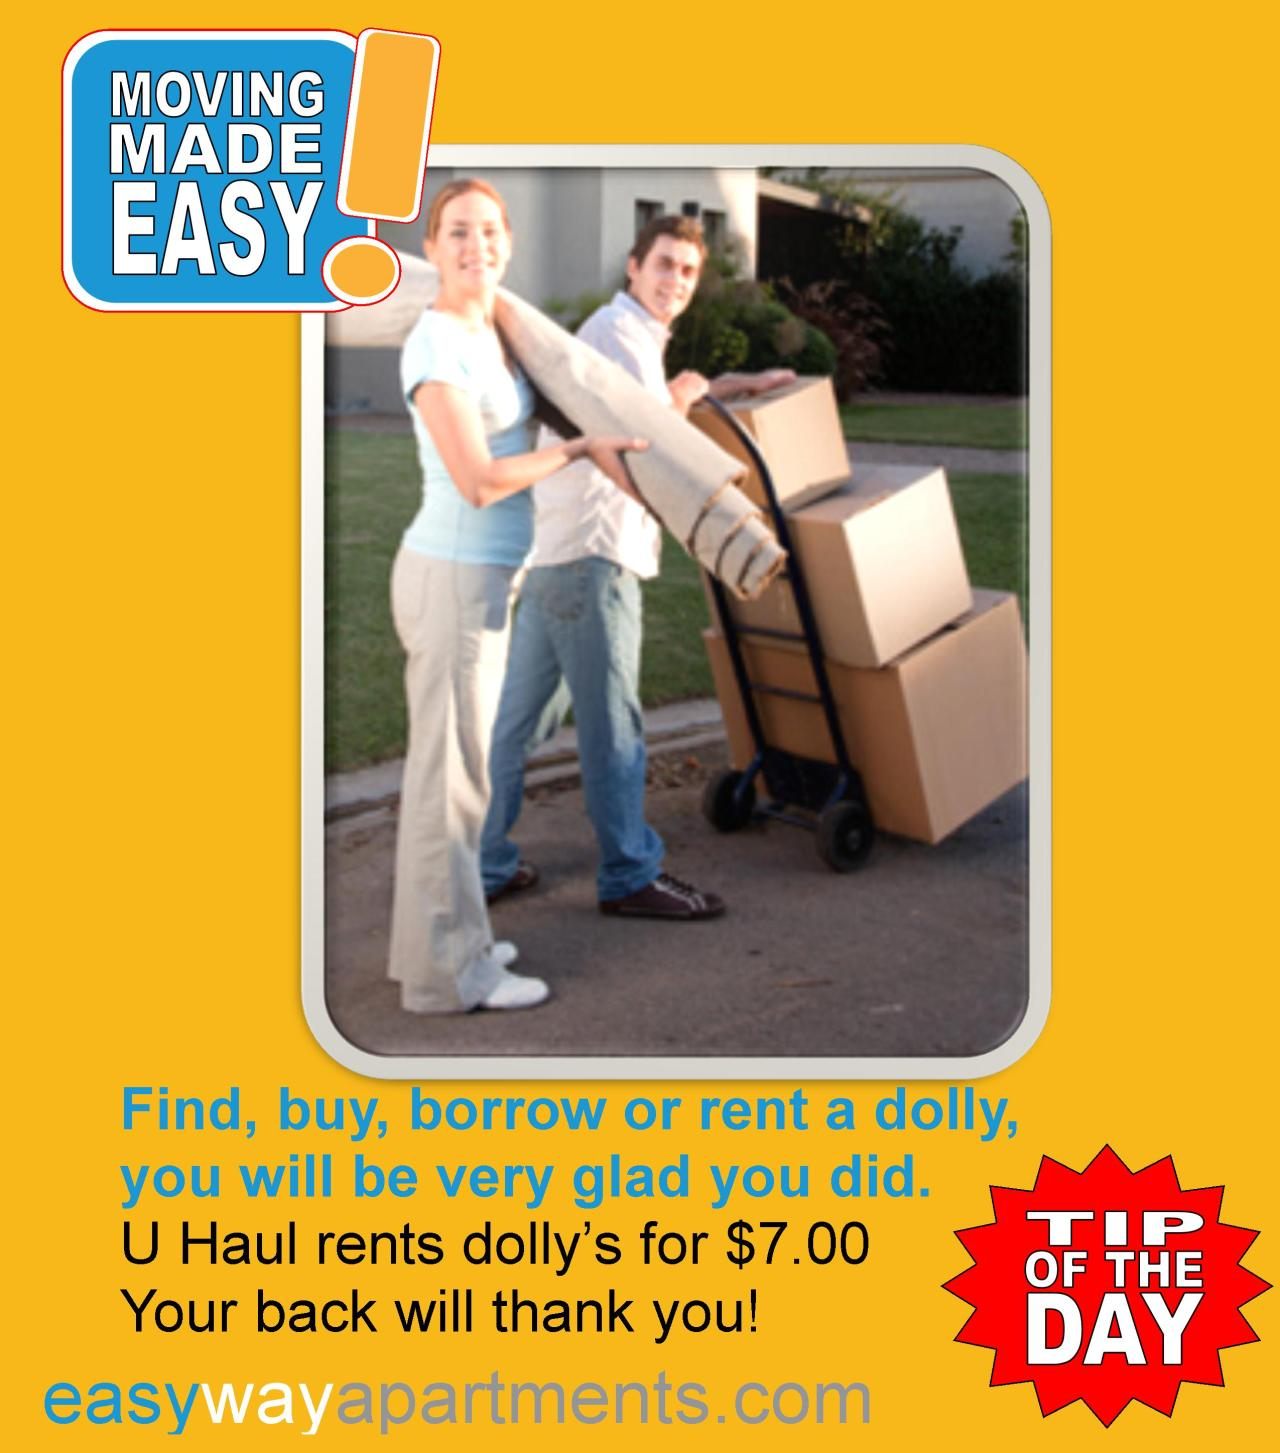 #moving made easy tip | Find, buy, borrow or rent a #dolly,  you will be very glad you did. U Haul rents dolly's for $7.00   Your back will thank you!